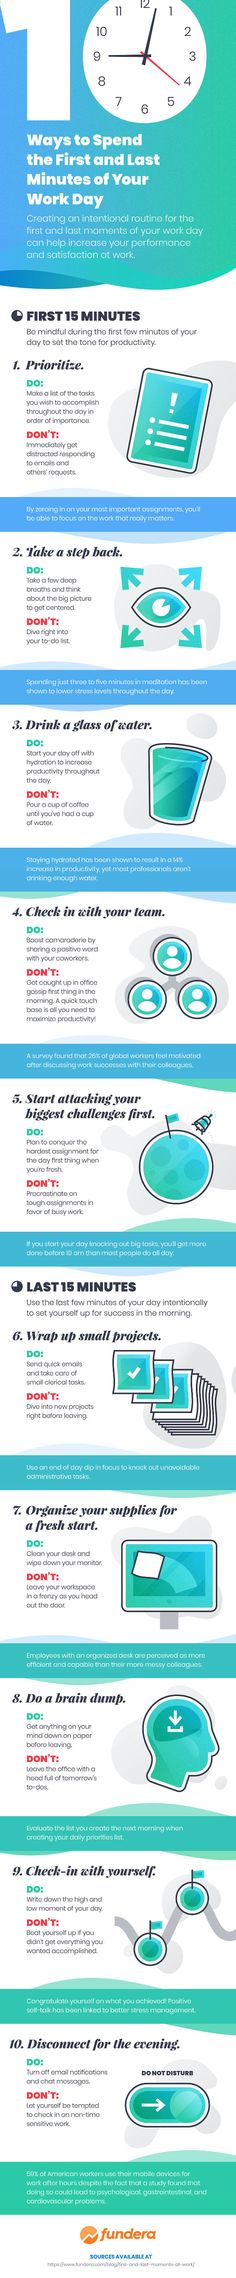 10 Ways to Make Your Workdays More Efficient | Infographic